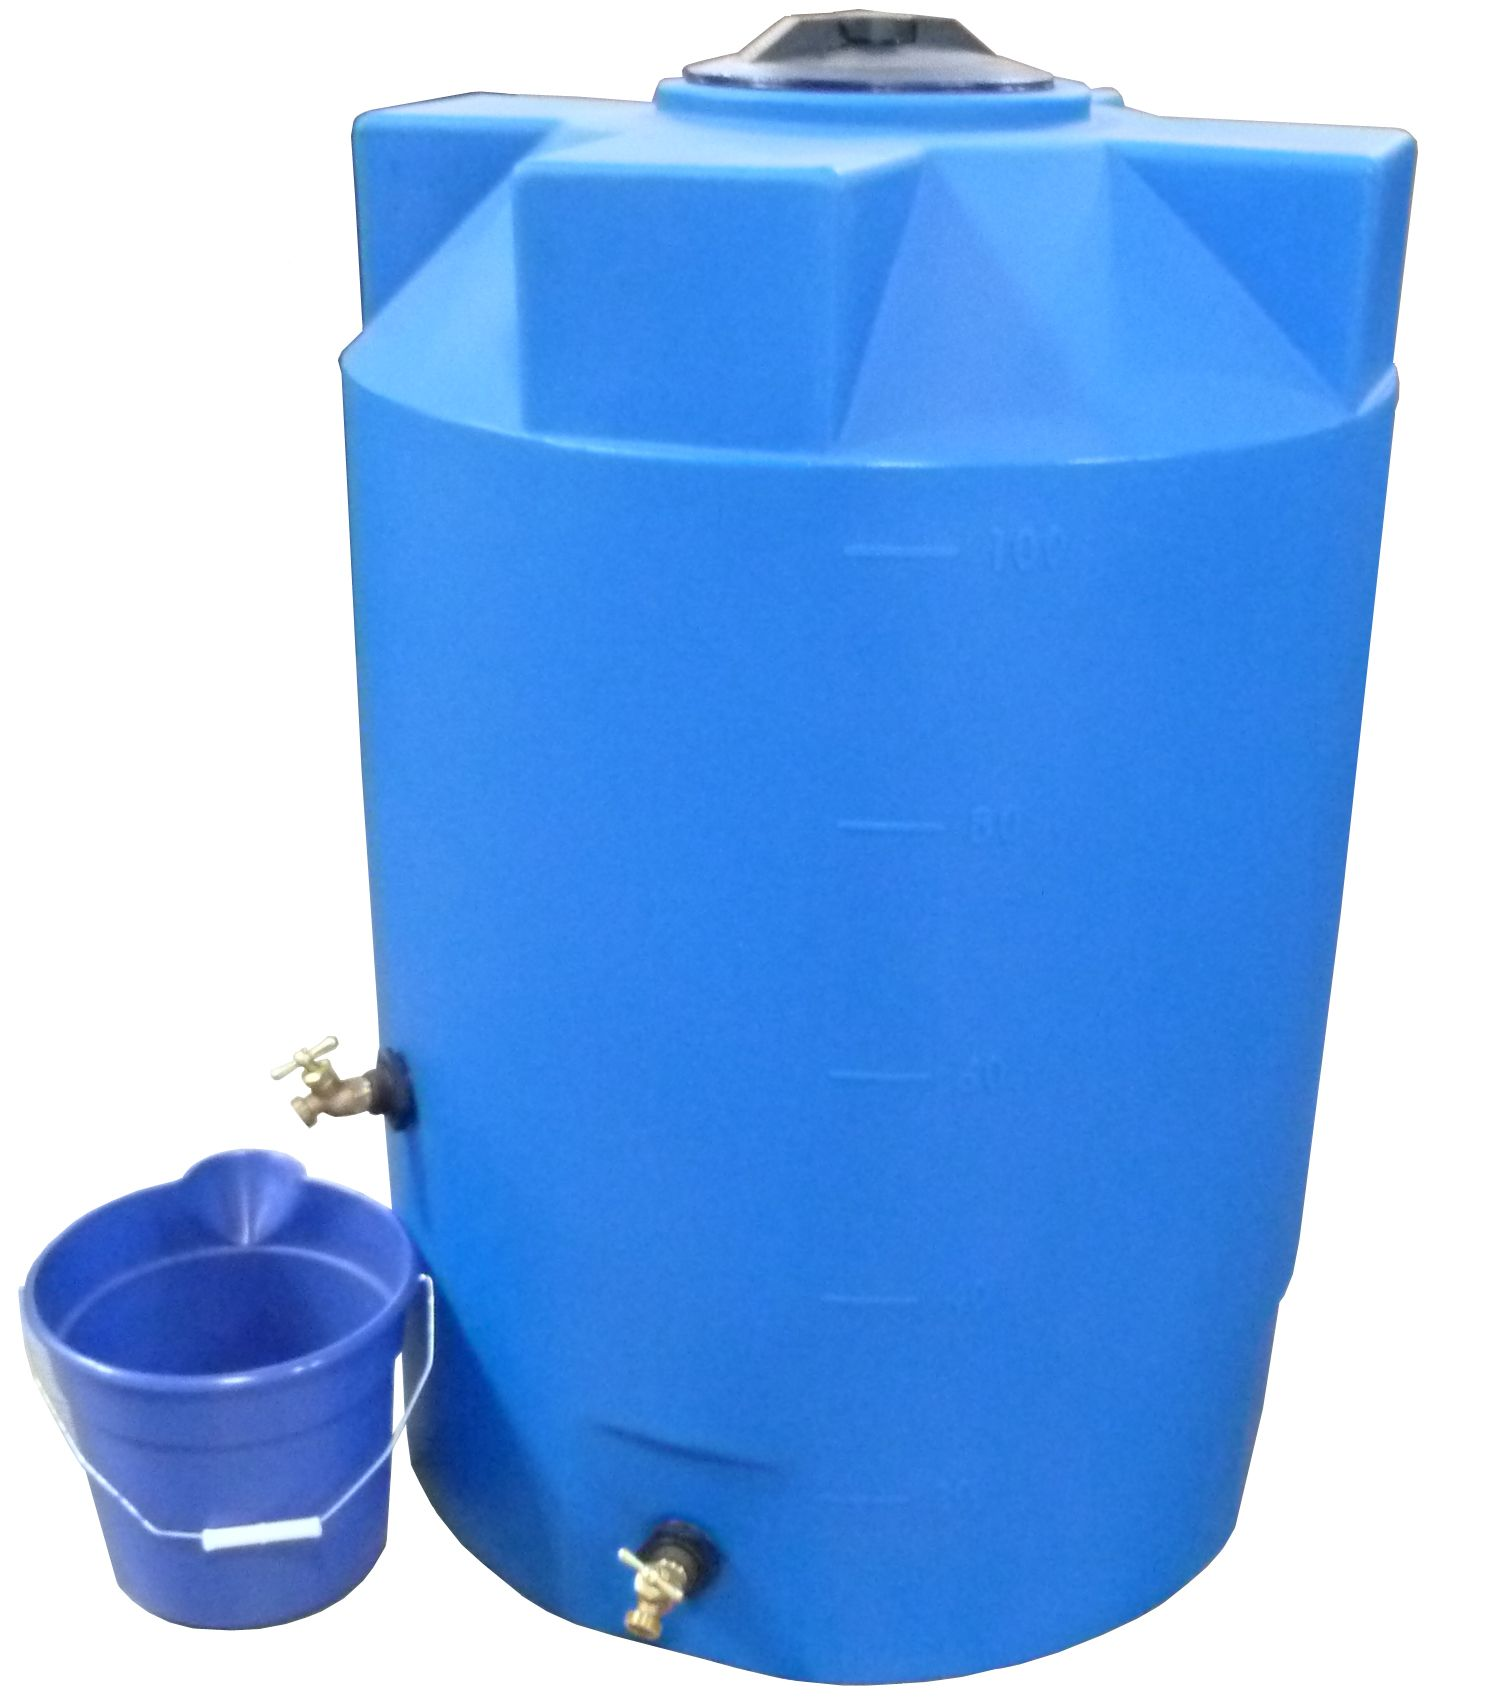 100 Gallon Emergency Water Storage Tank Light Blue Www Poly Mart Com Water Storage Water Storage Tanks Emergency Water